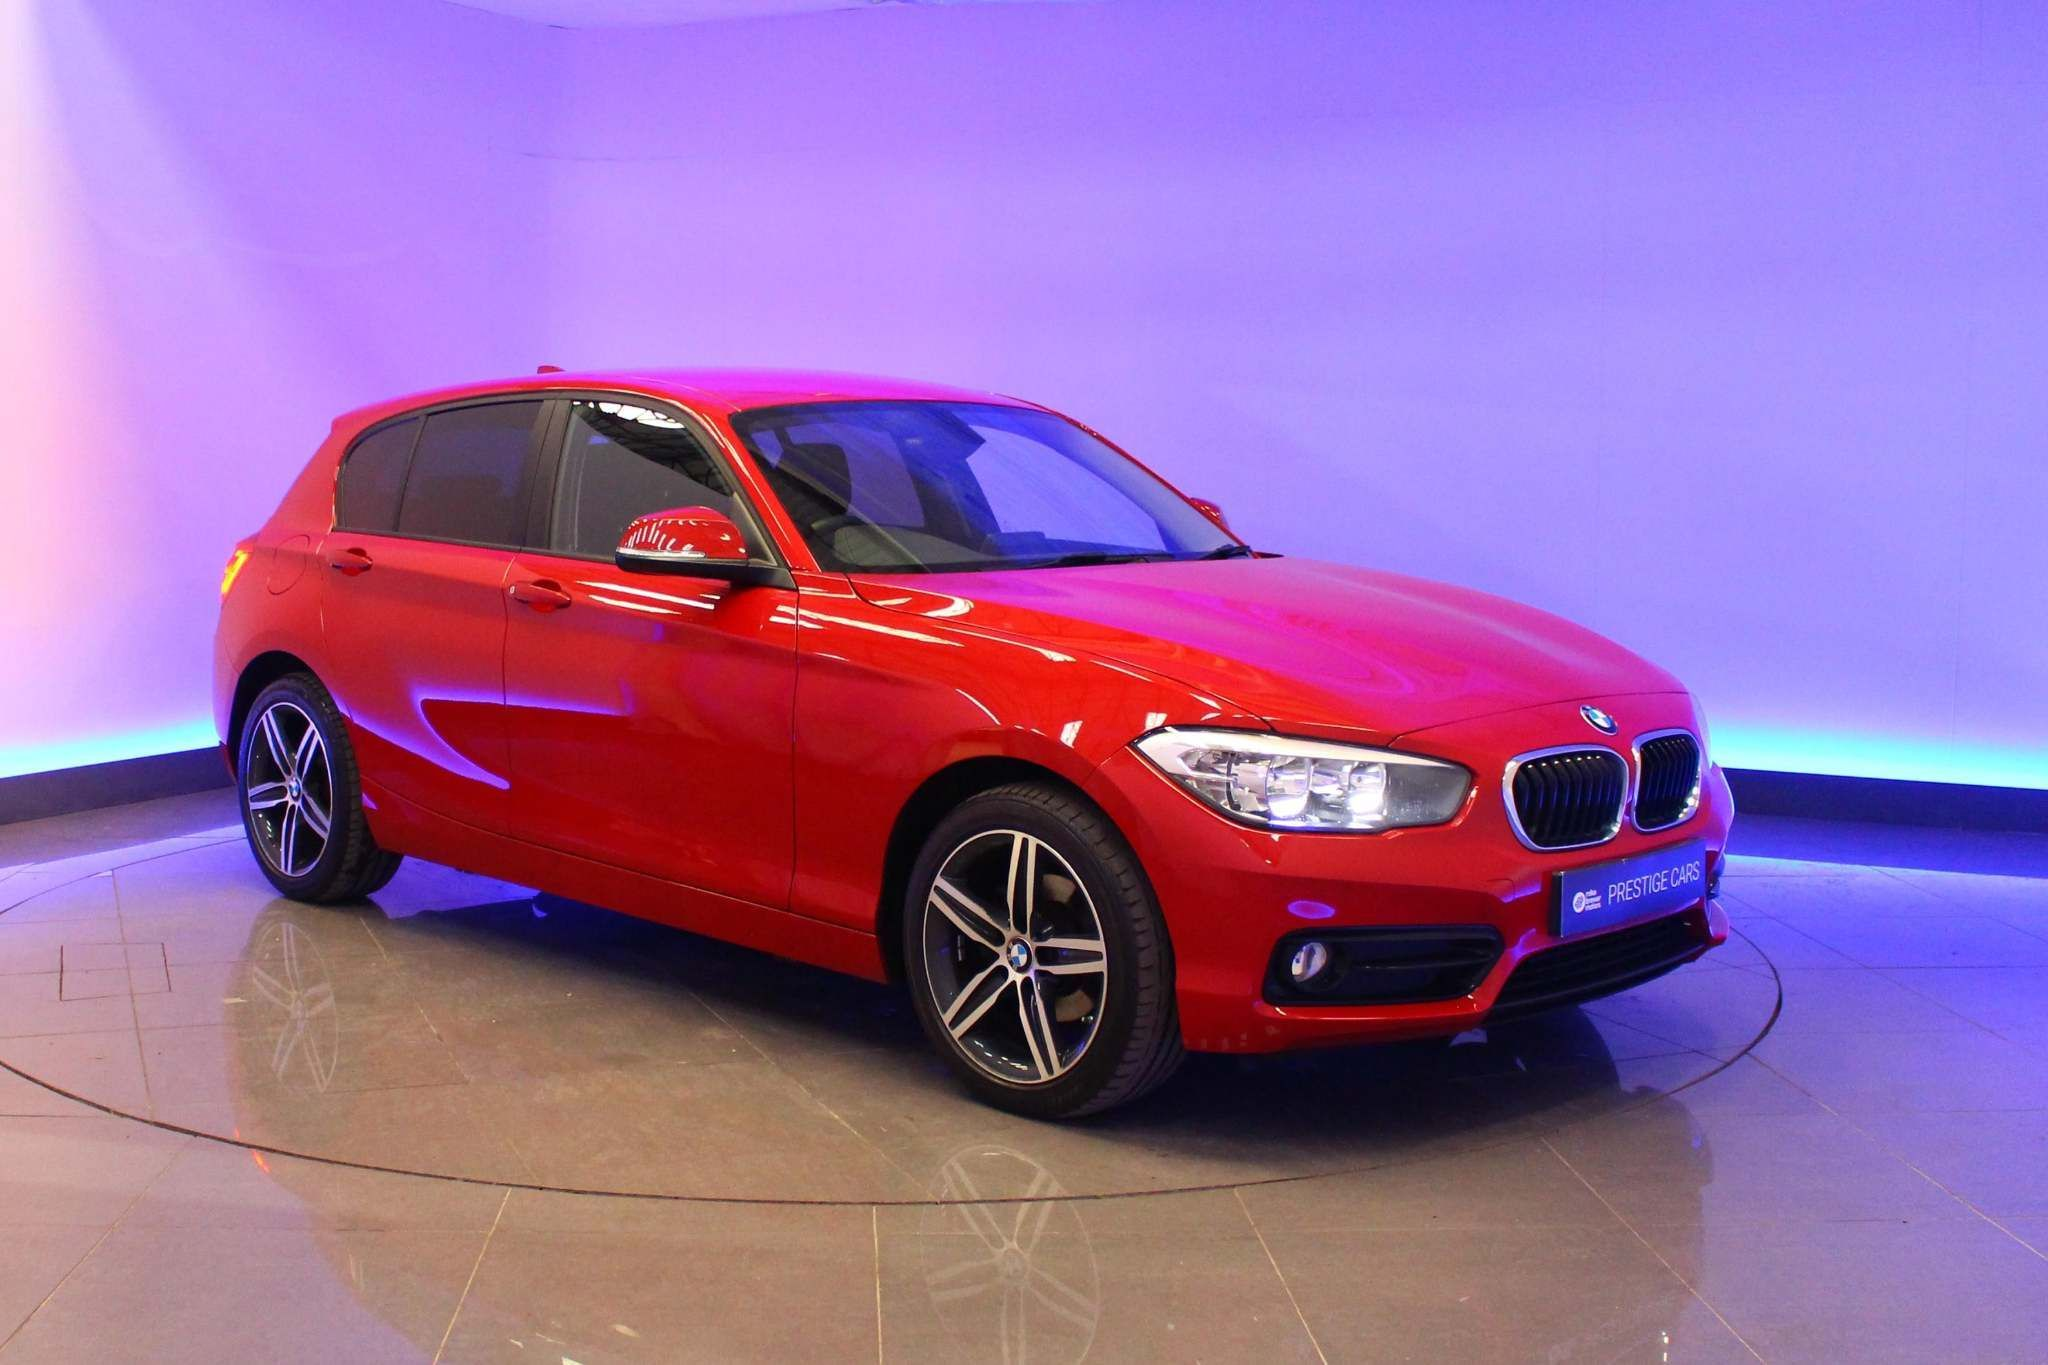 Used BMW 1 Series 1.5 116d Sport Sports Hatch Auto (s/s) 5dr